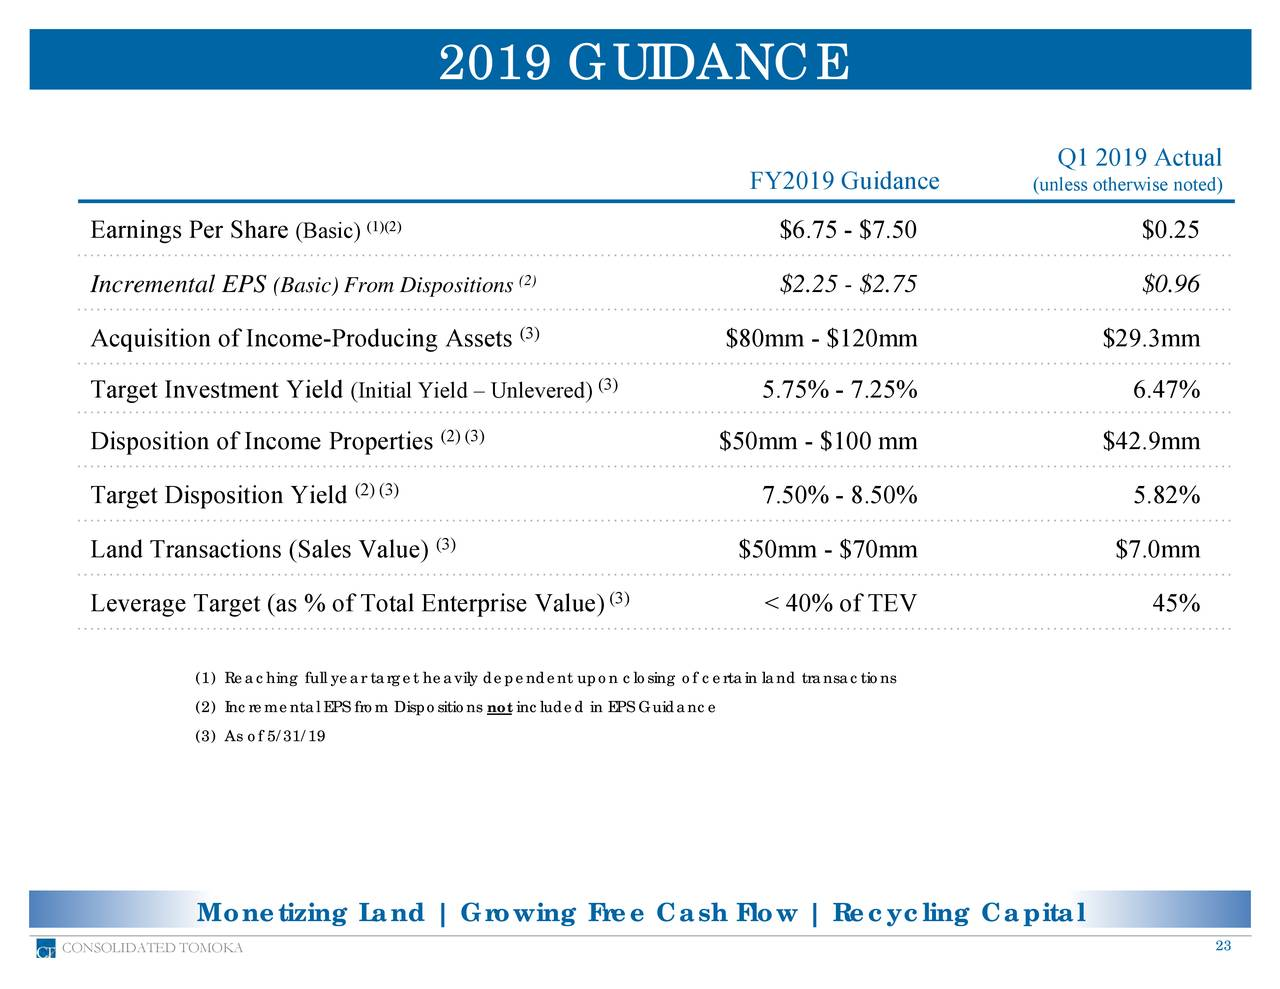 Q1 2019 Actual FY2019 Guidance (unless otherwise noted) (1)(2) Earnings Per Share (Basic) $6.75 - $7.50 $0.25 Incremental EPS (Basic) From Dispositions2) $2.25 - $2.75 $0.96 Acquisition of Income-Producing Assets (3) $80mm - $120mm $29.3mm (3) Target Investment Yield (Initial Yield – Unlevered) 5.75% - 7.25% 6.47% Disposition of Income Properties (2) (3) $50mm - $100 mm $42.9mm Target Disposition Yield (2) (3) 7.50% - 8.50% 5.82% (3) Land Transactions (Sales Value) $50mm - $70mm $7.0mm Leverage Target (as % of Total Enterprise Value) (3) < 40% of TEV 45% (1) Reaching full year target heavily dependent upon closing of certain land transactions (2) Incremental EPS from Dispositions not included in EPS Guidance (3) As of 5/31/19 Monetizing Land | Growing Free Cash Flow | Recycling Capital CONSOLIDATED TOMOKA 23